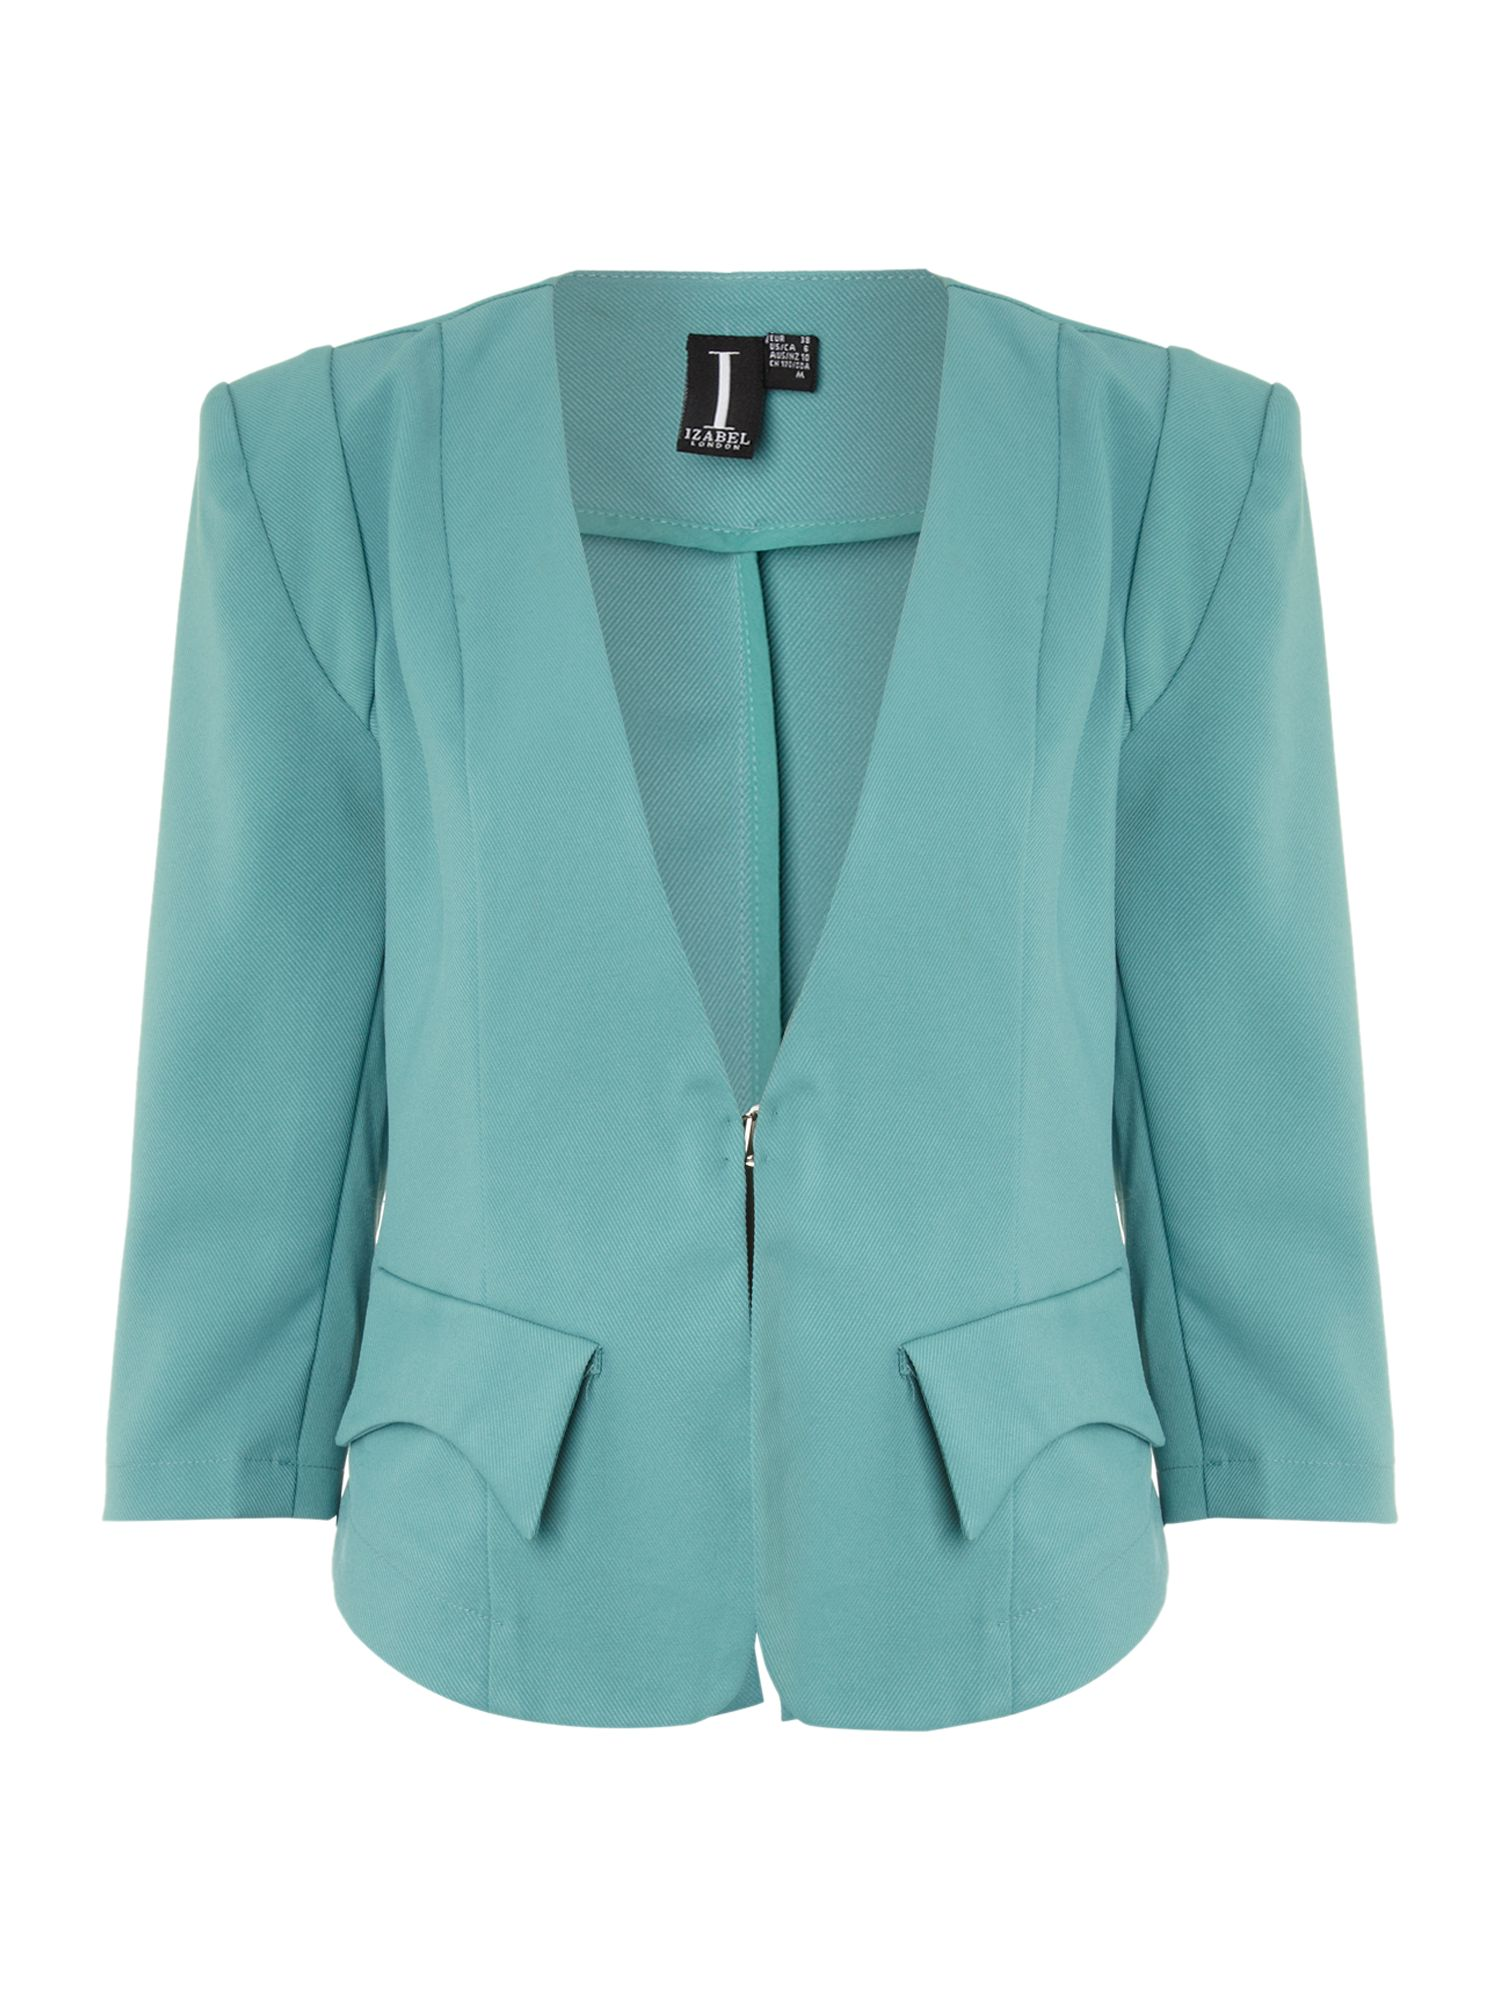 3/4 sleeve collarless jacket